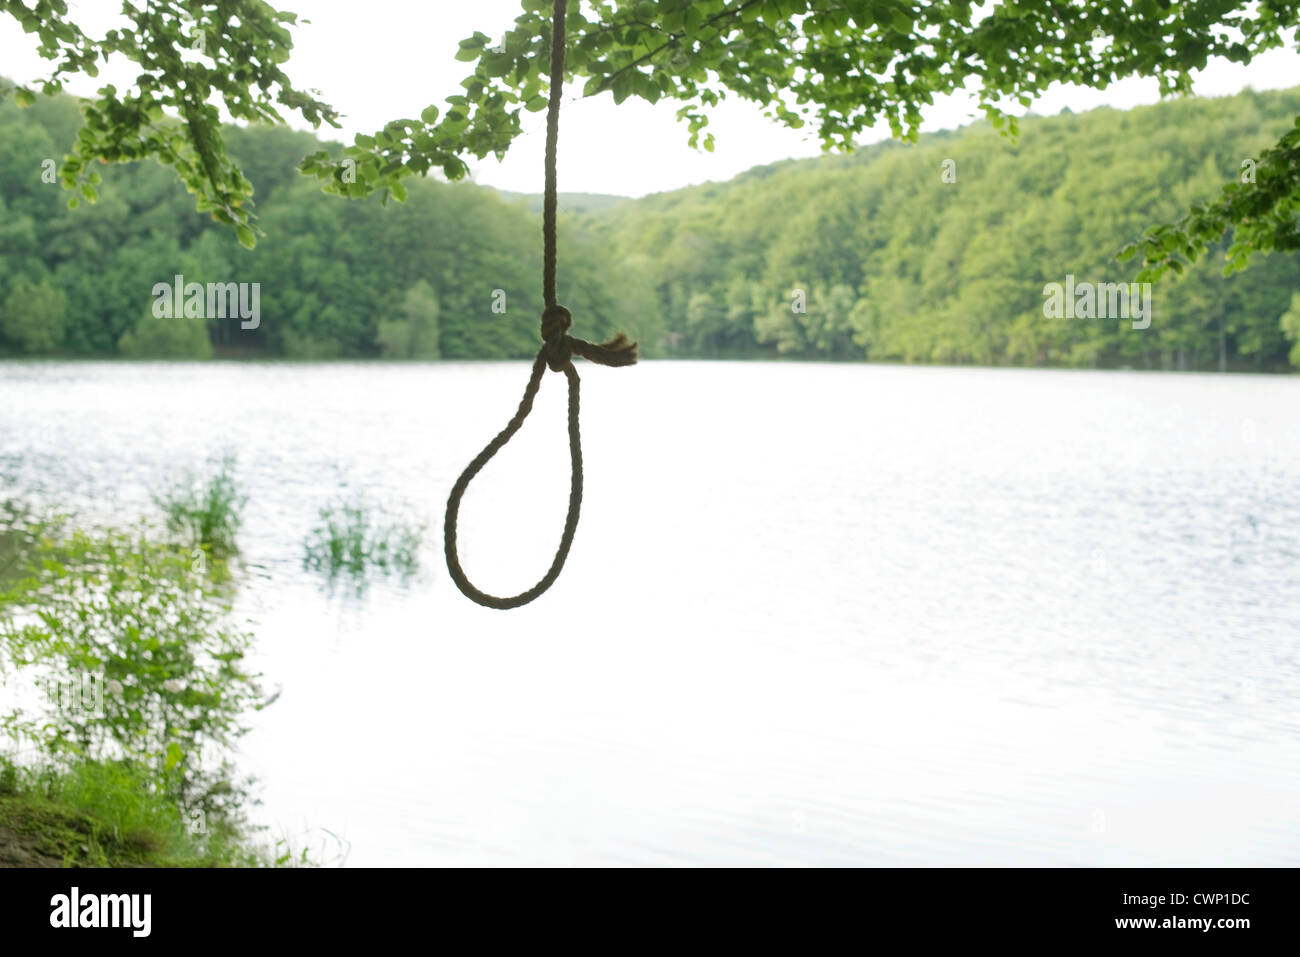 Noose hanging from tree - Stock Image